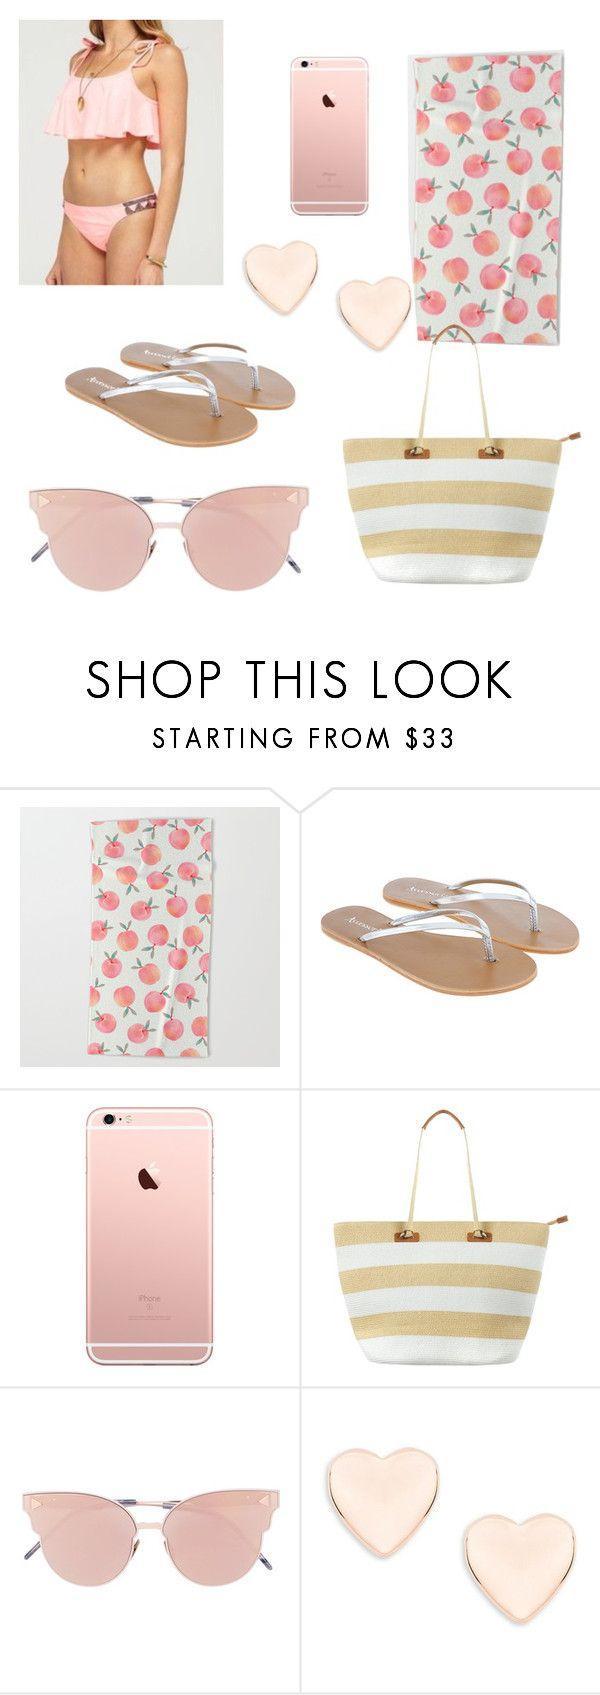 Untitled #38 by palaghia-teona on Polyvore featuring Accessorize, Phase Eight, Ted Baker and So.Ya